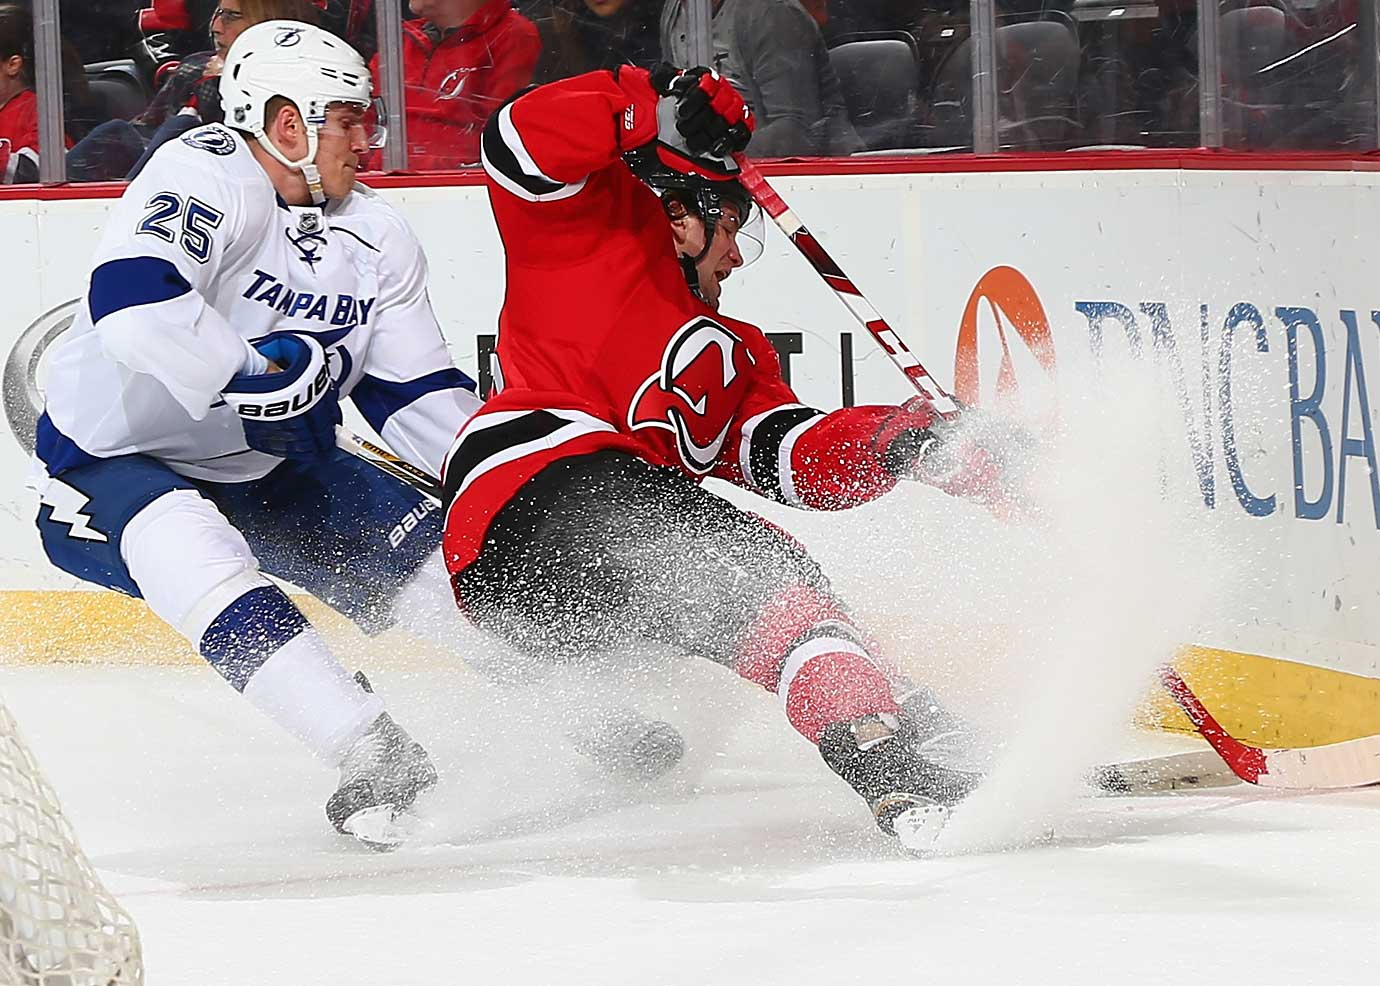 Bobby Farnham of the New Jersey Devils and Matthew Carle of Tampa Bay battle for the puck.